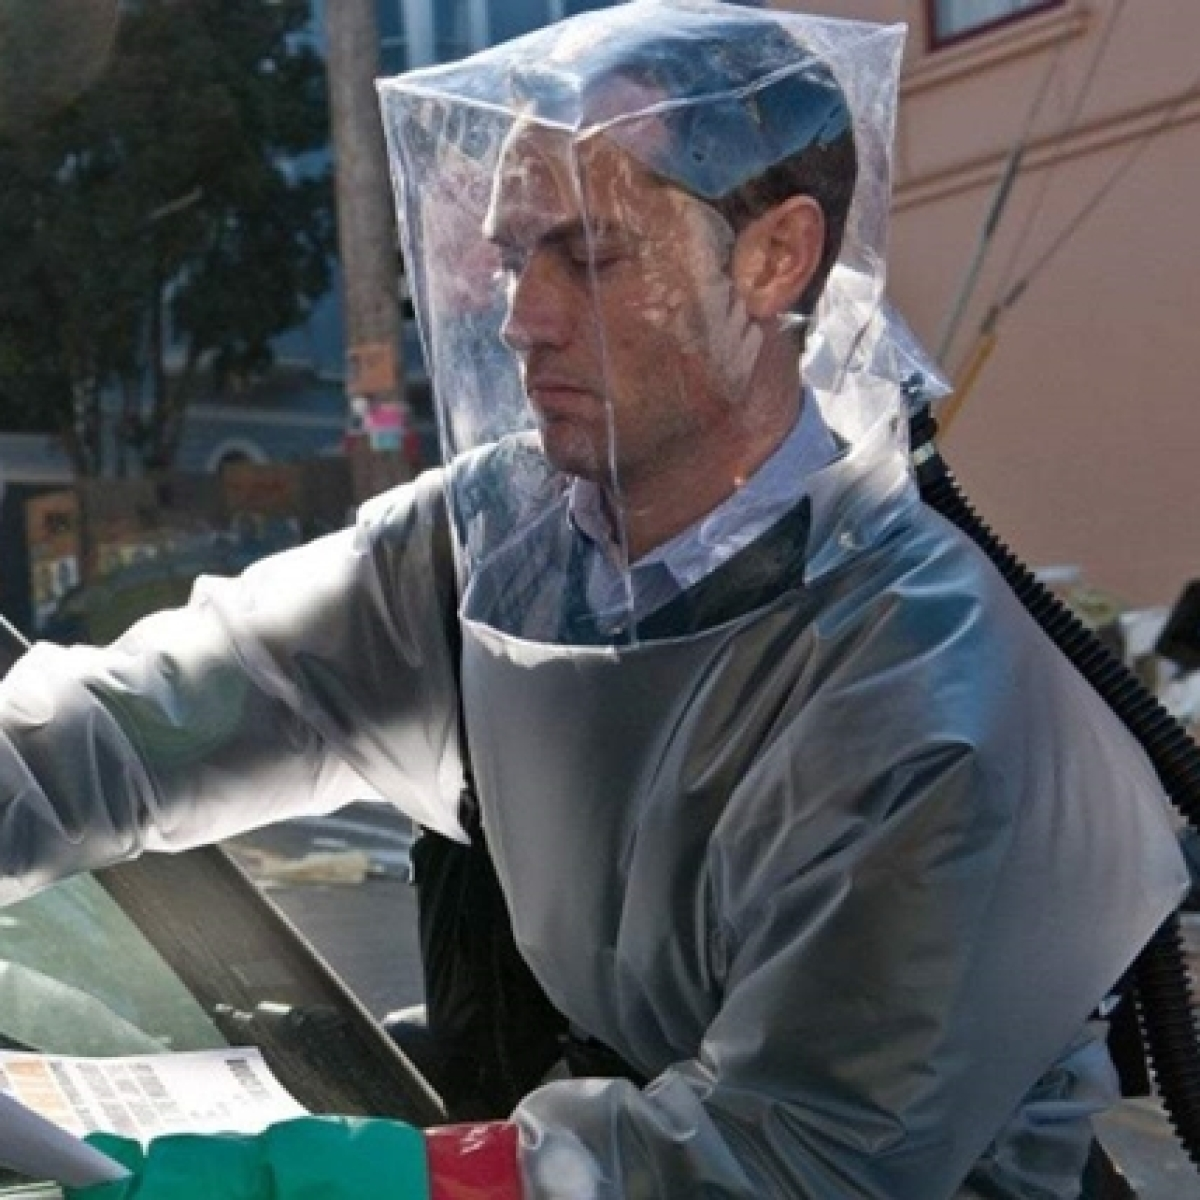 Reel meets real life: 'Contagion' movie consultant doctor tests positive for coronavirus